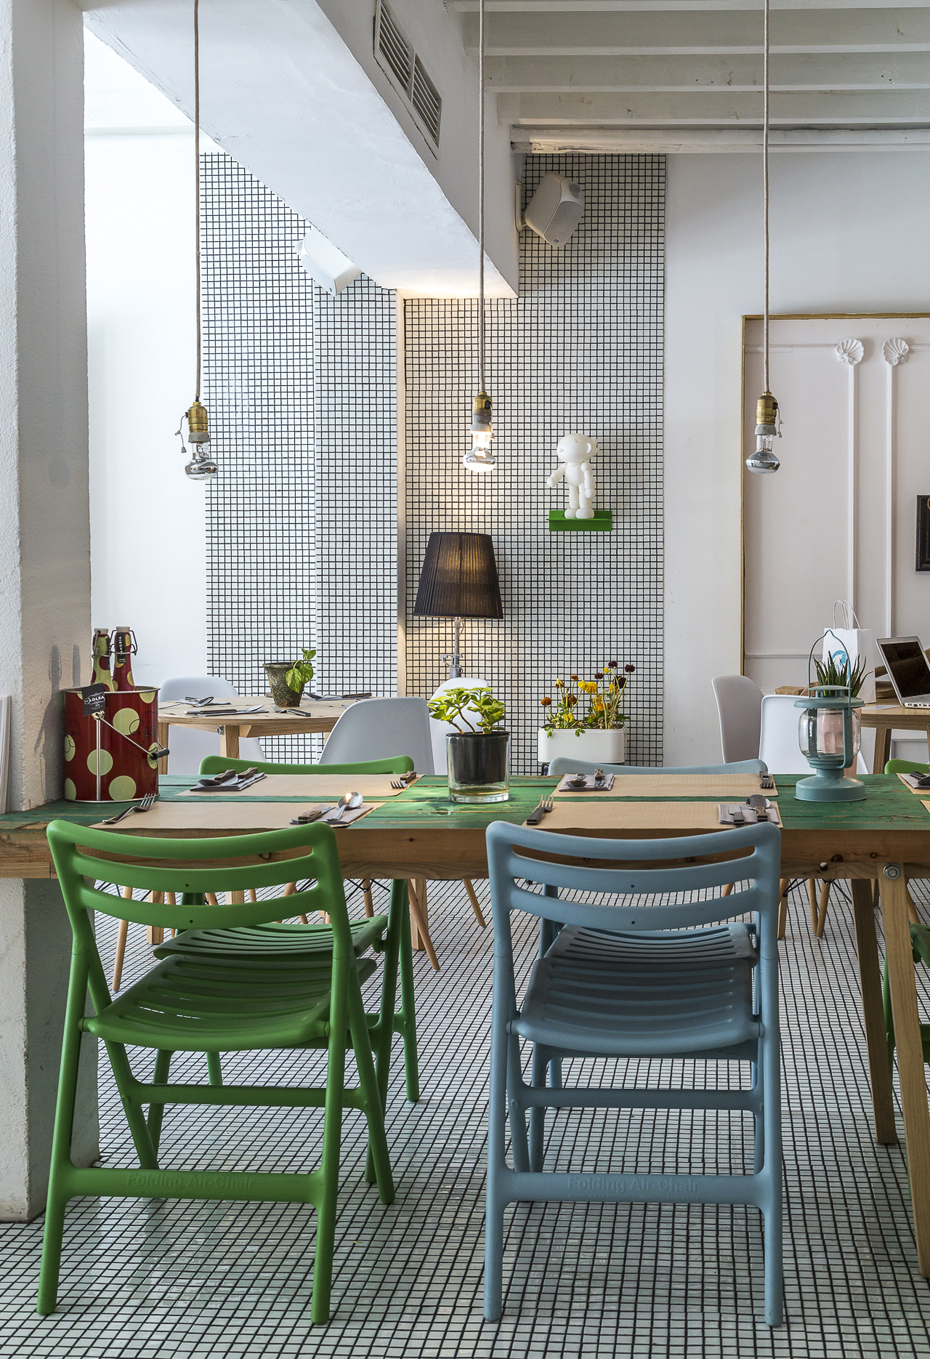 Bros-Stylish-Restaurant-Santa-Catarina